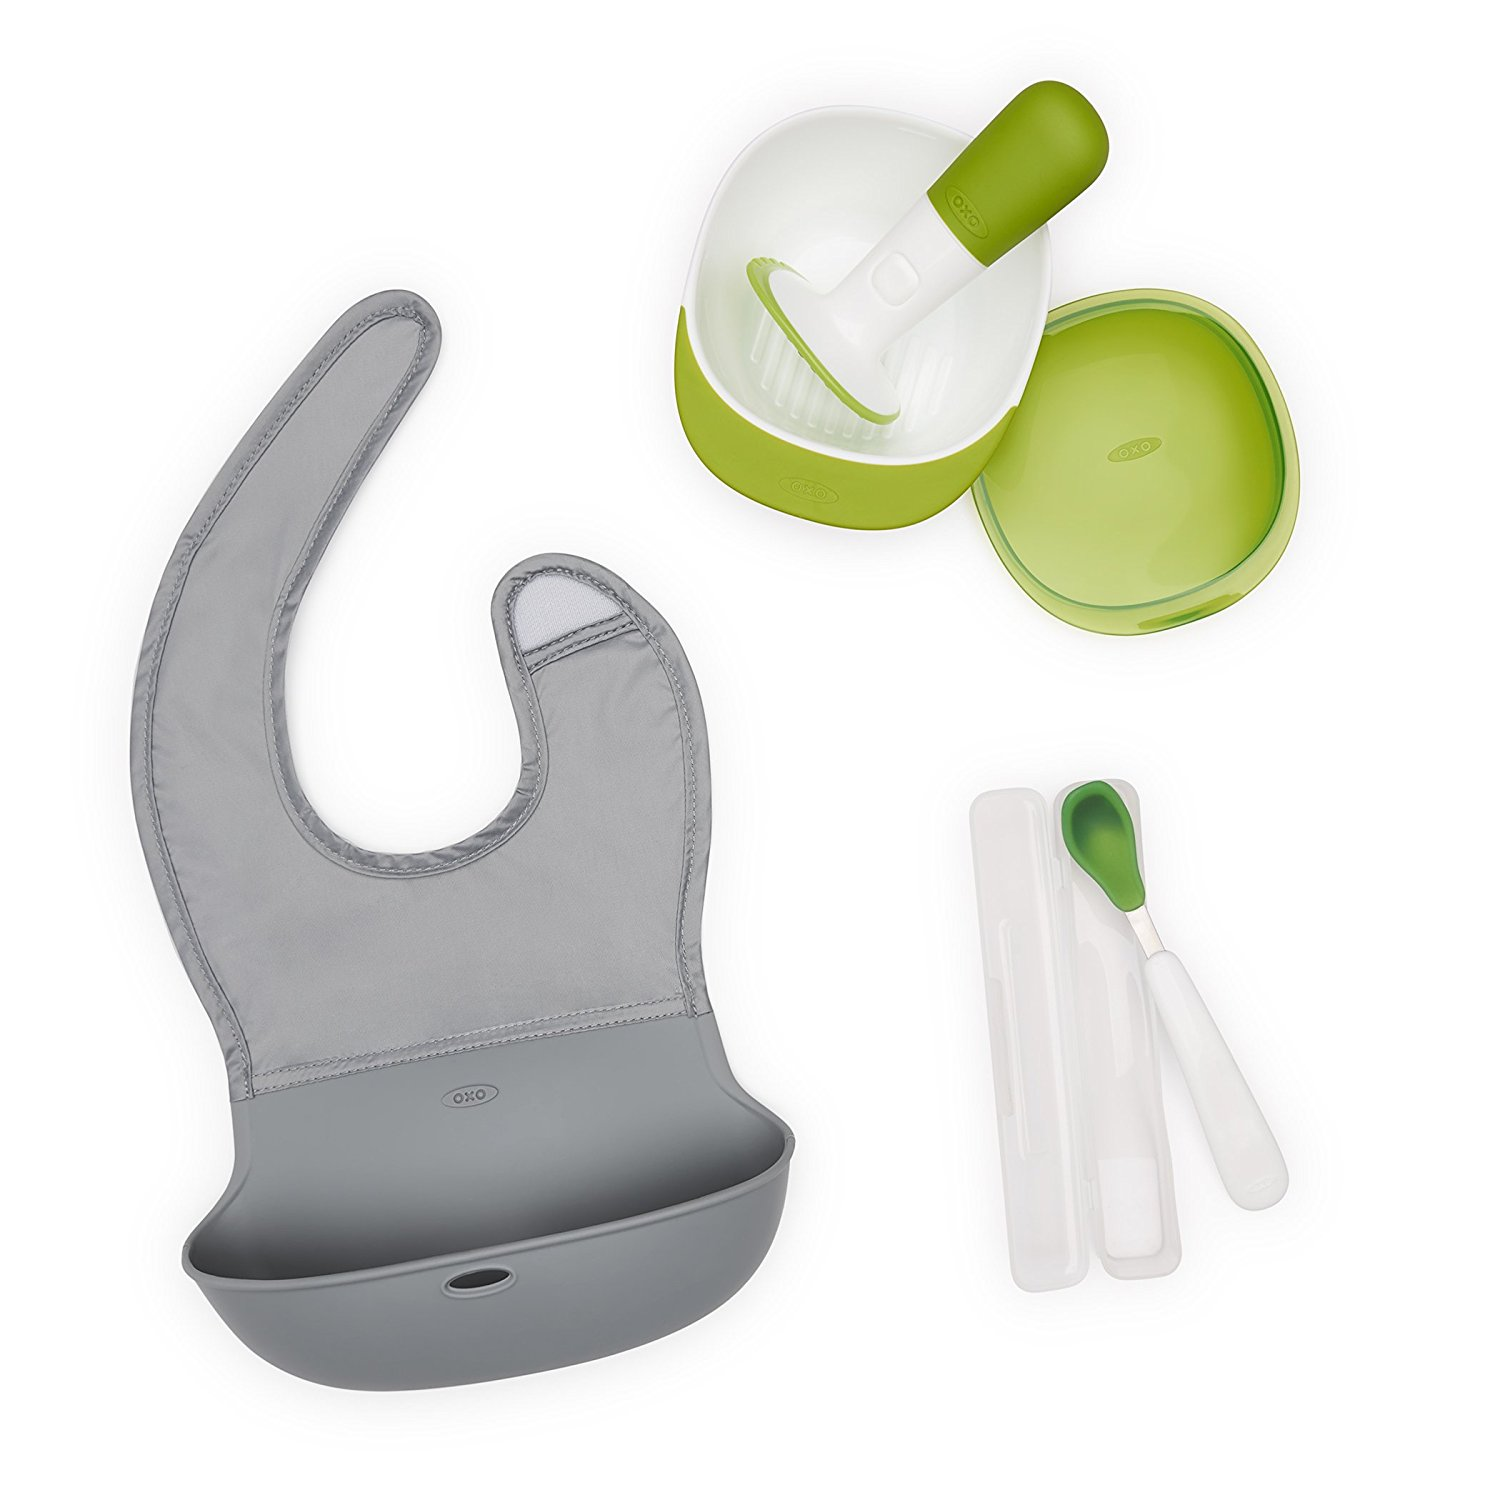 Tot Mealtime On-the-Go Set with Roll-up Bib, Food Masher, and Feeding Spoon with Case..., By OXO Ship from US by OXO